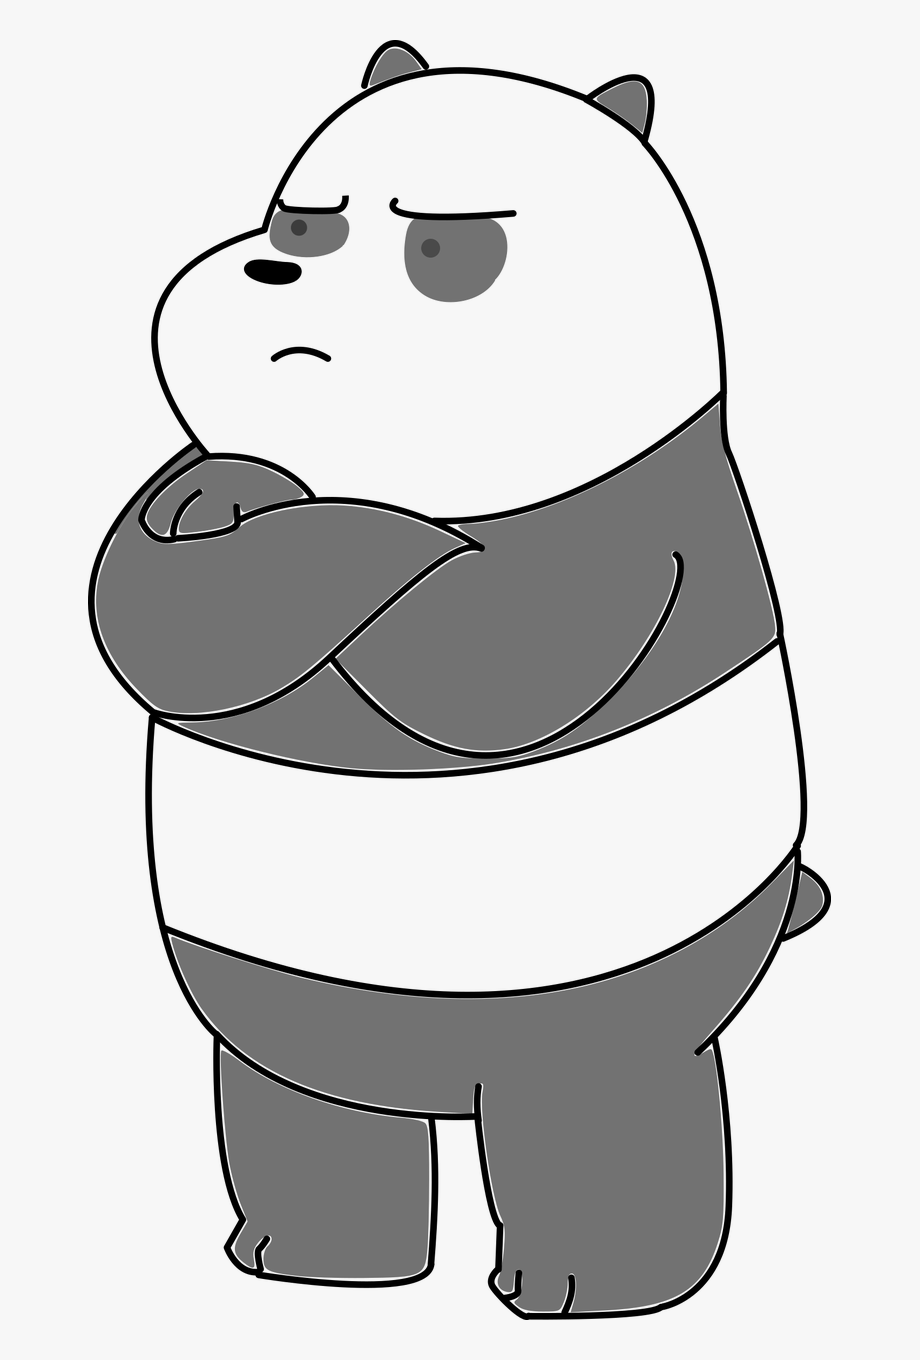 Drawing we bare bears. Panda bear animal free